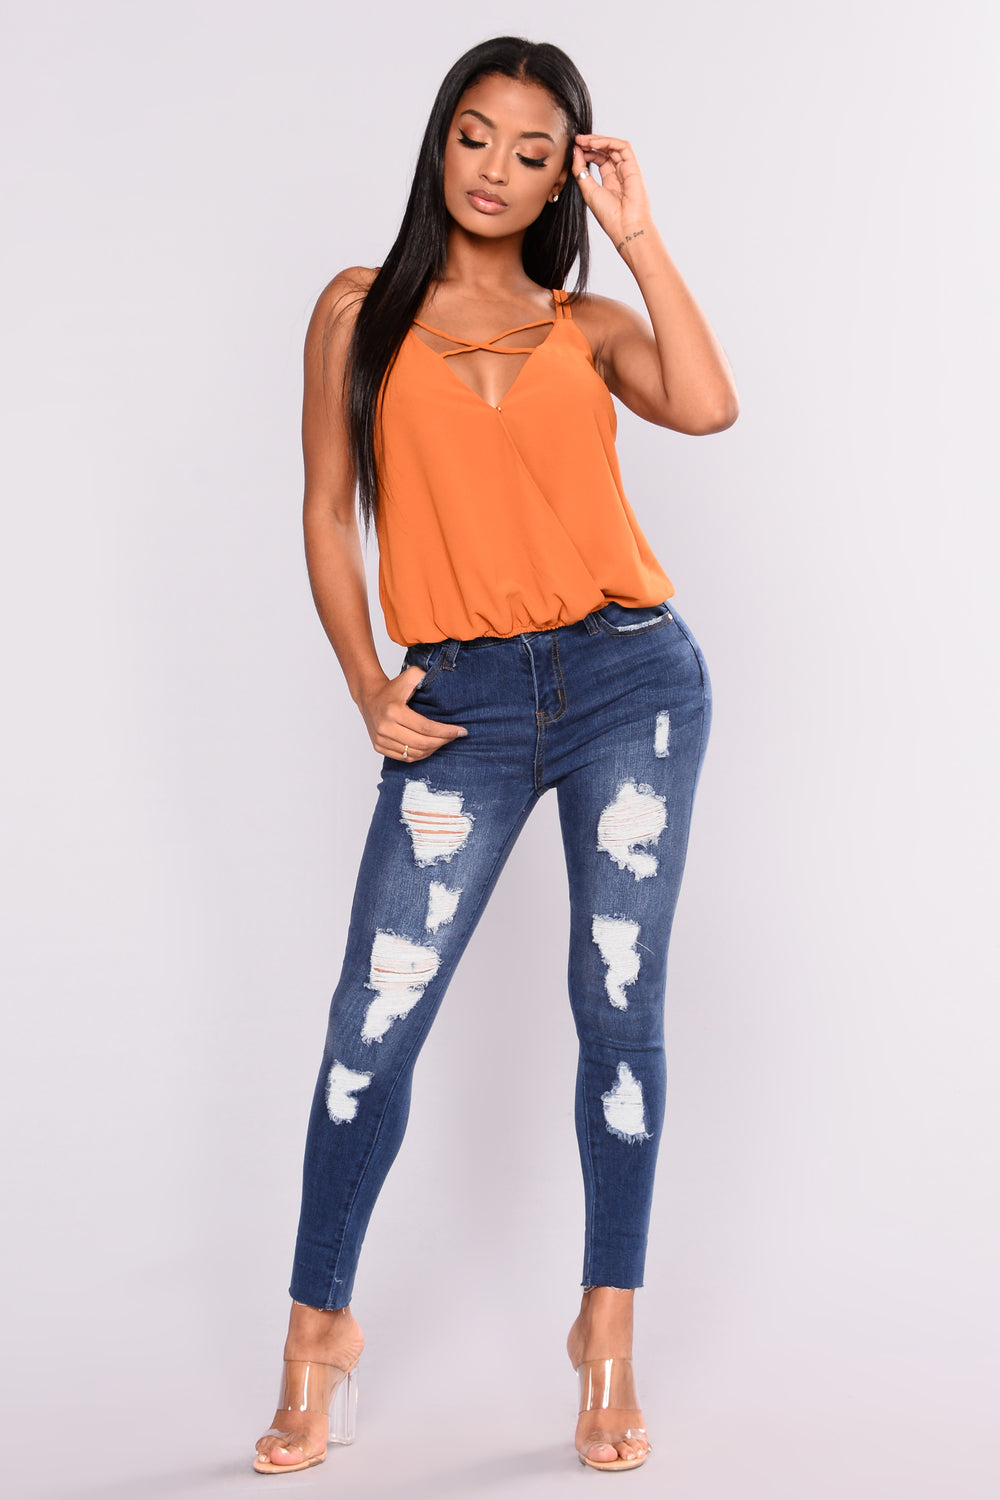 Keep It On The DL Ankle Jeans - Dark Denim